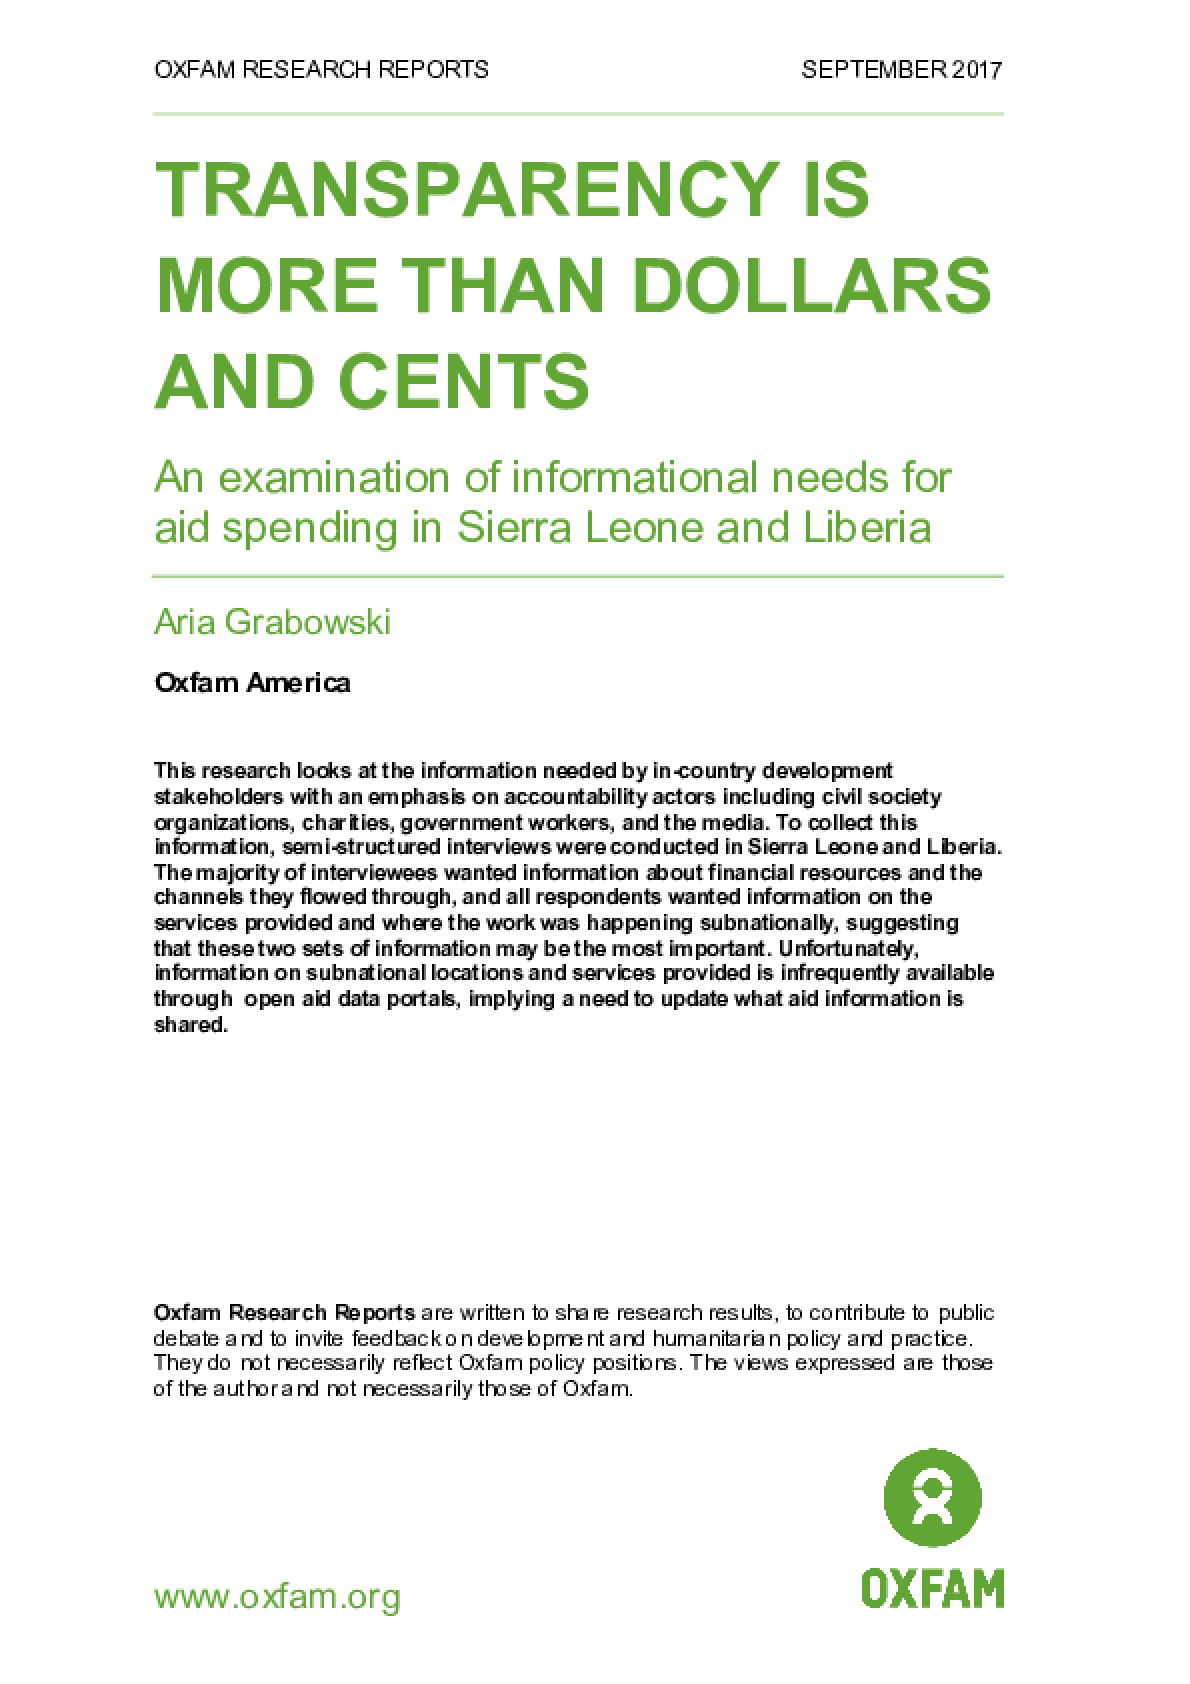 Transparency is more than dollars and cents: An examination of informational needs for aid spending in Sierra Leone and Liberia